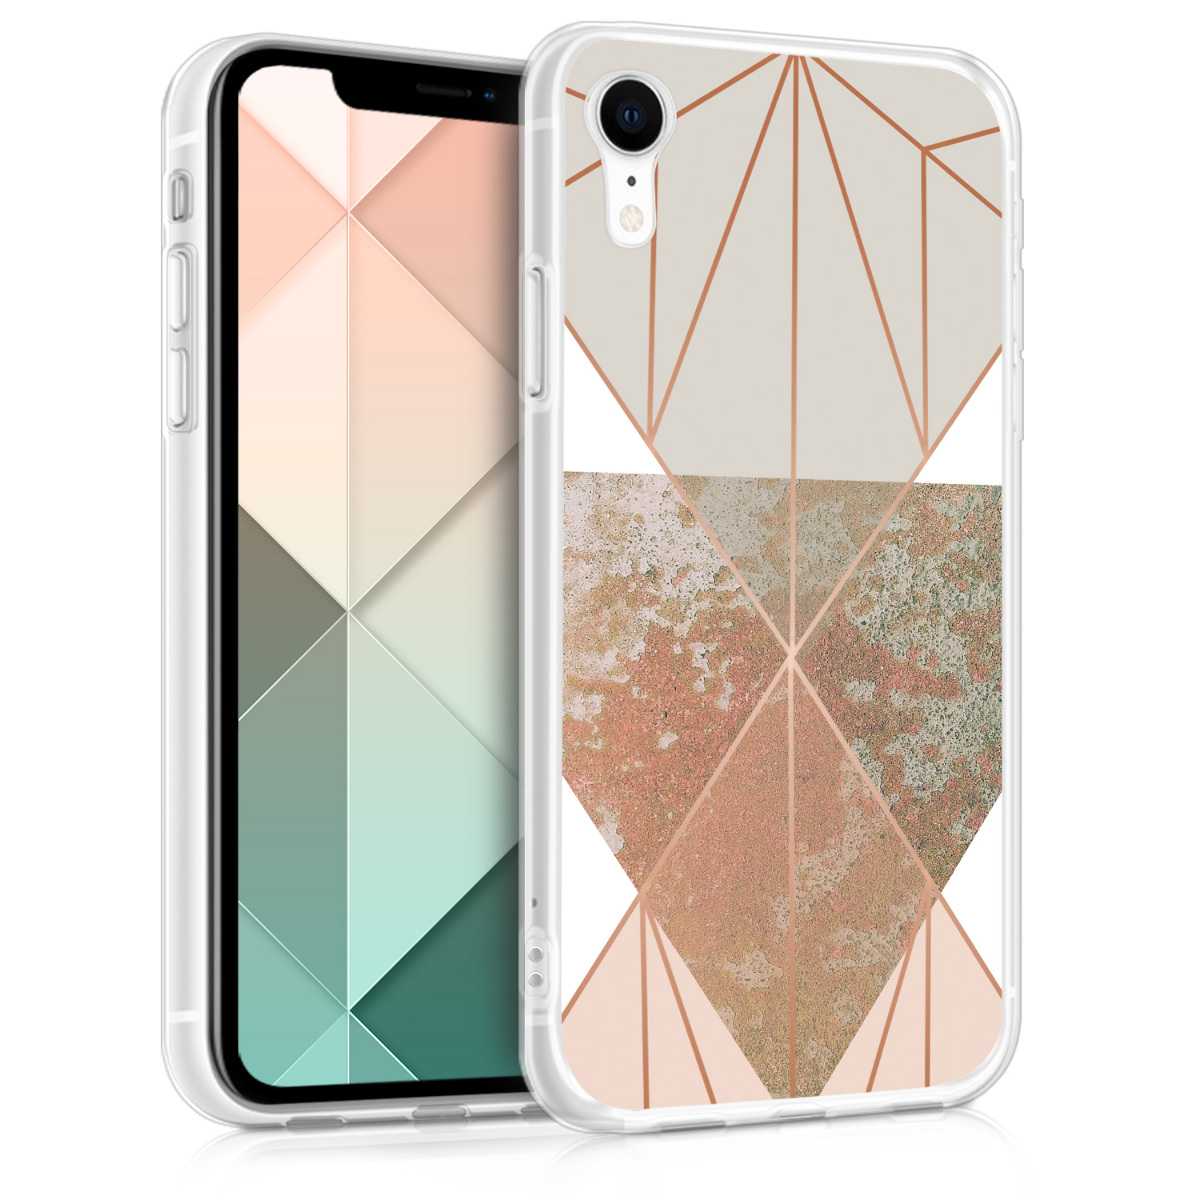 KW Θήκη Σιλικόνης iPhone XR - Beige / Rose Gold / White (45912.13)